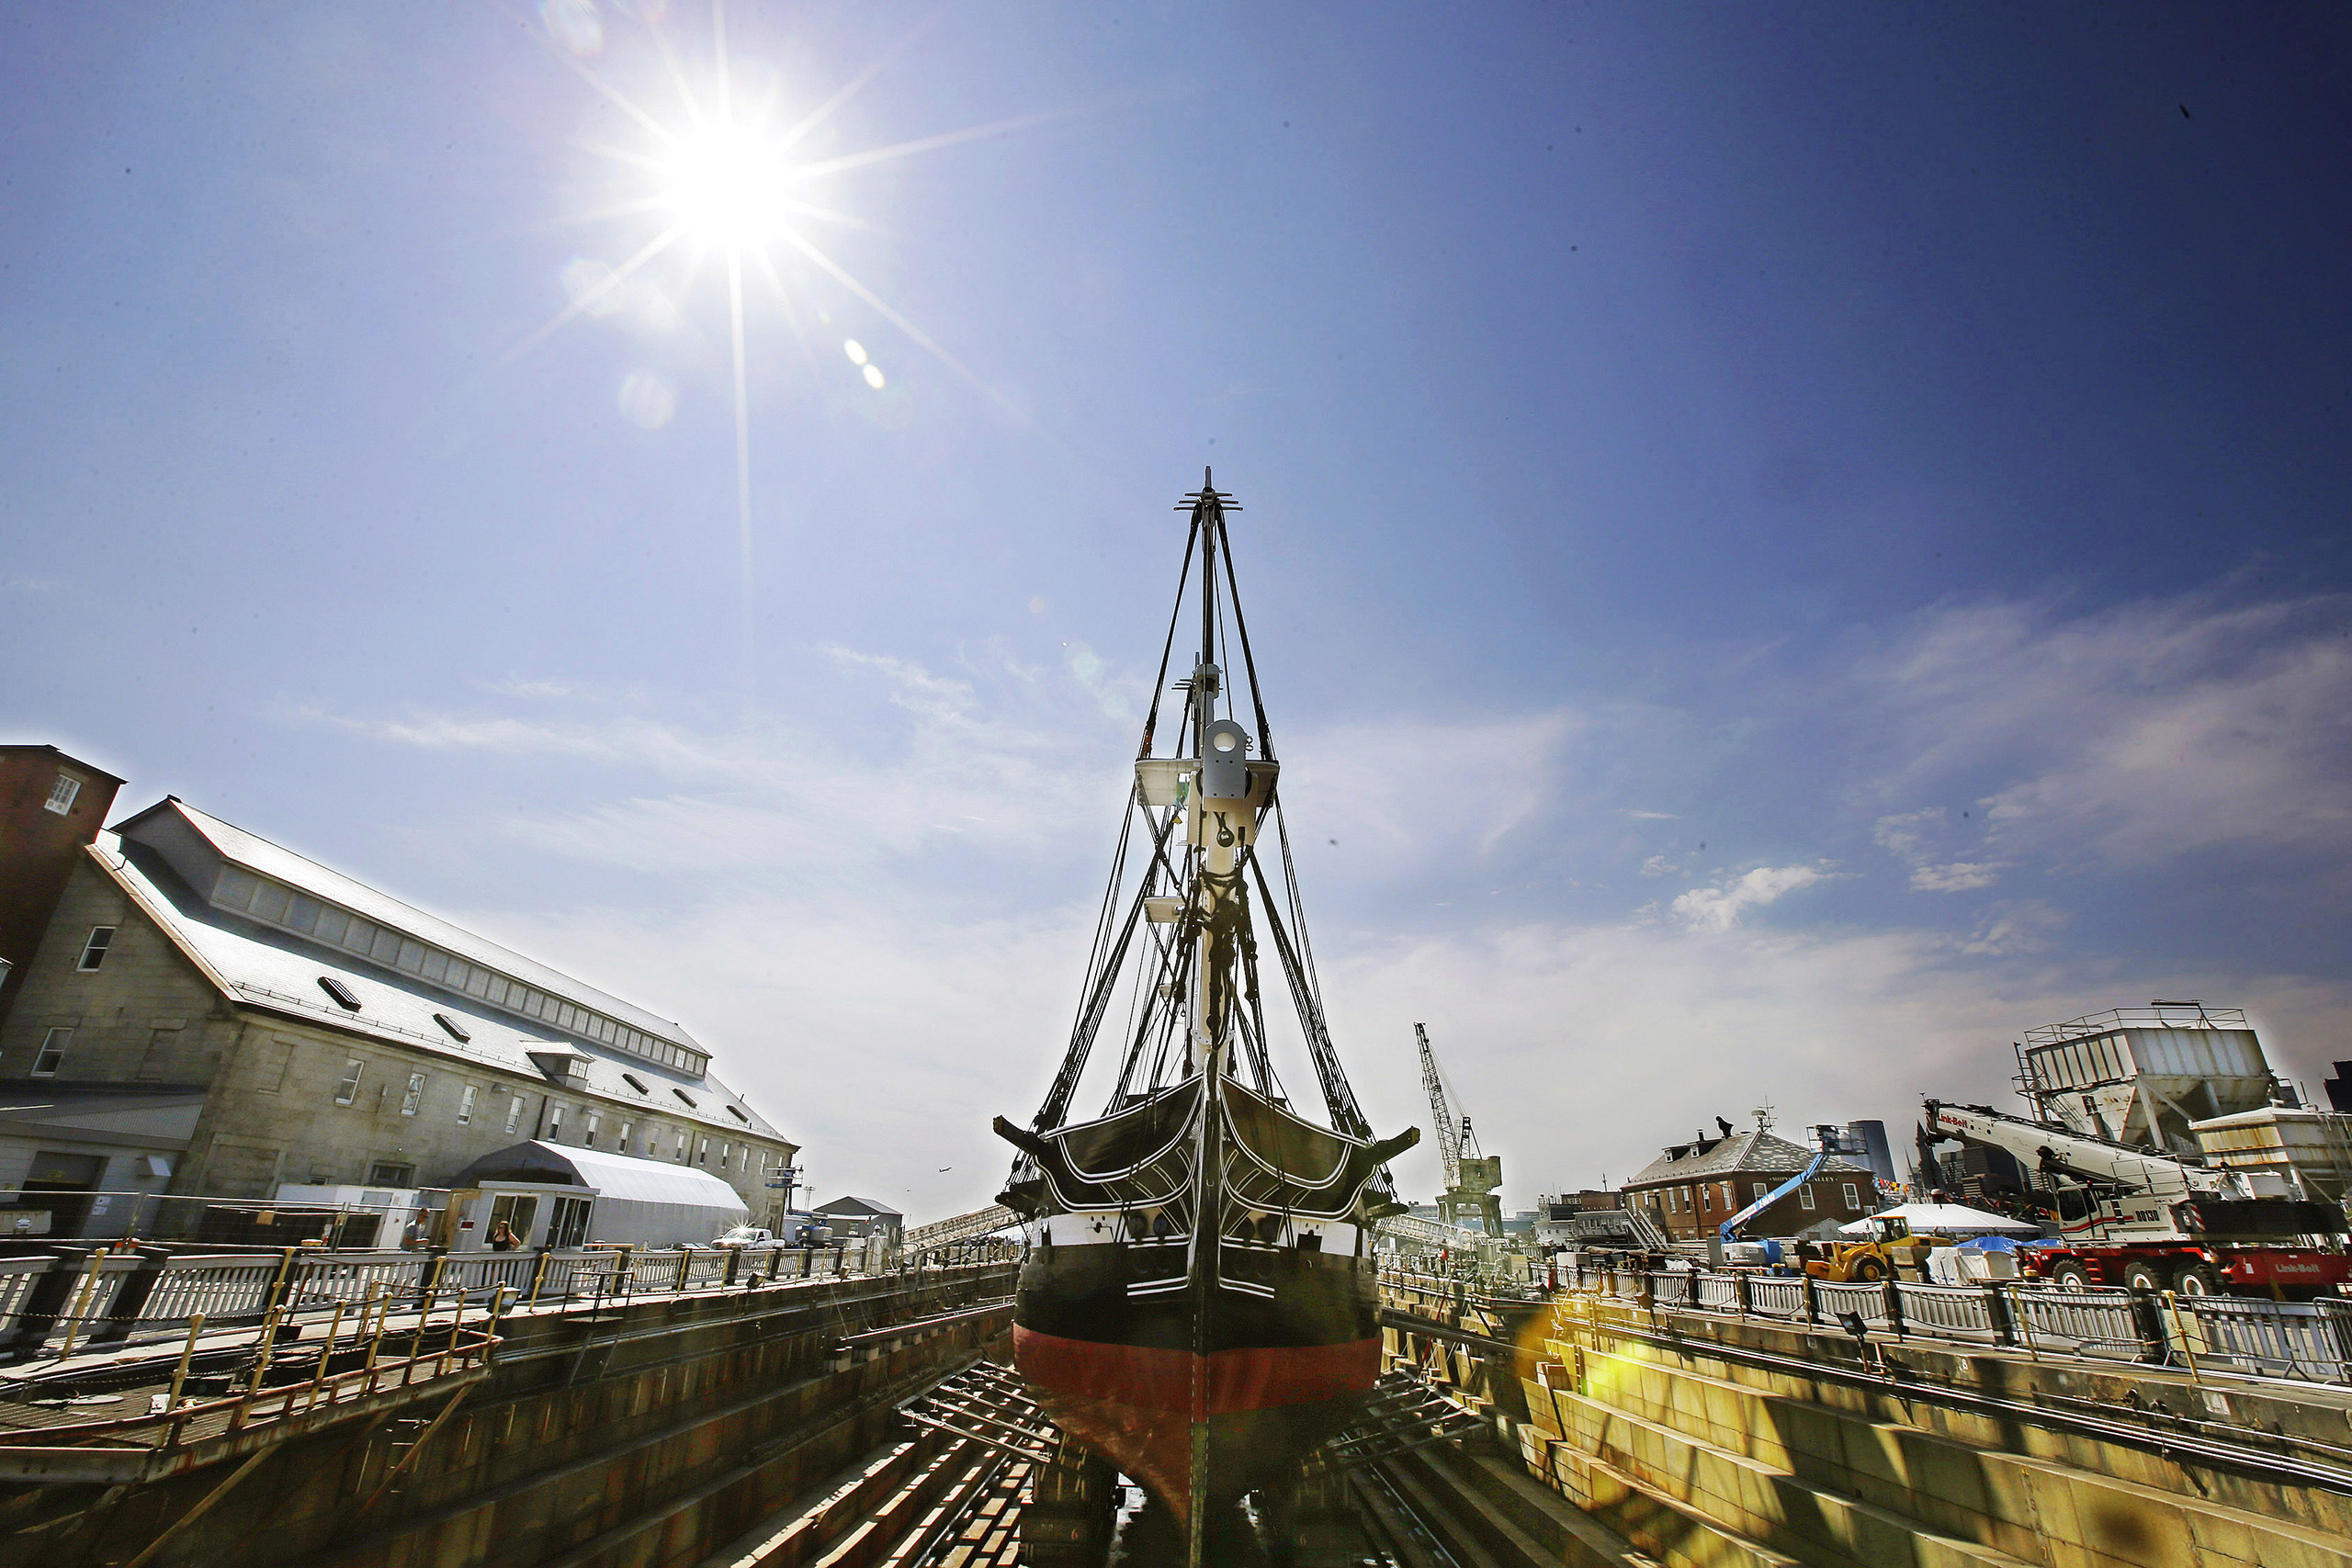 The USS Constitution,  Old Ironsides,  the world's oldest commissioned warship, sits in dry dock in Boston after a more then two year long restoration, on July 17, 2017.